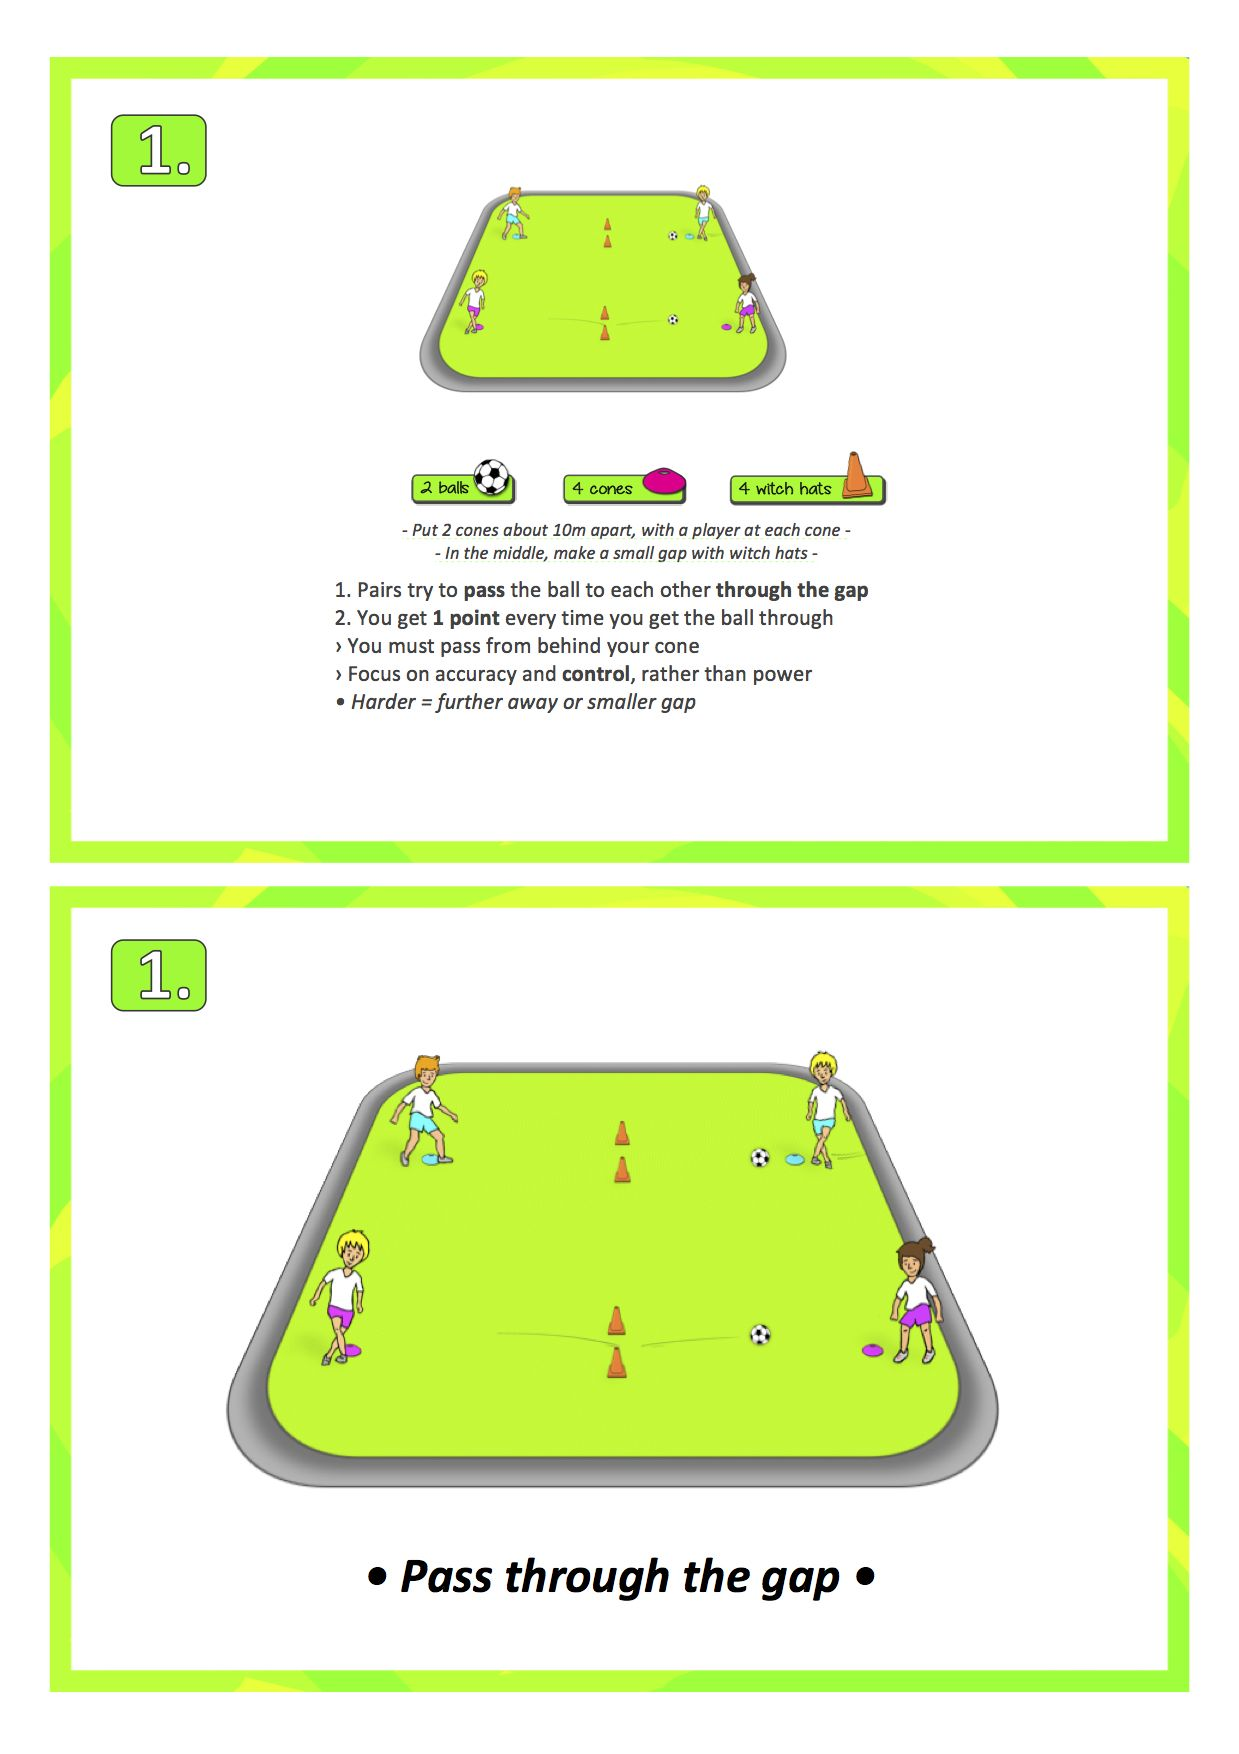 Co Operate Compete 6 Fun Pair Skill Stations Cards Printable Physical Education Lessons Physical Education Games Games For Kids Classroom